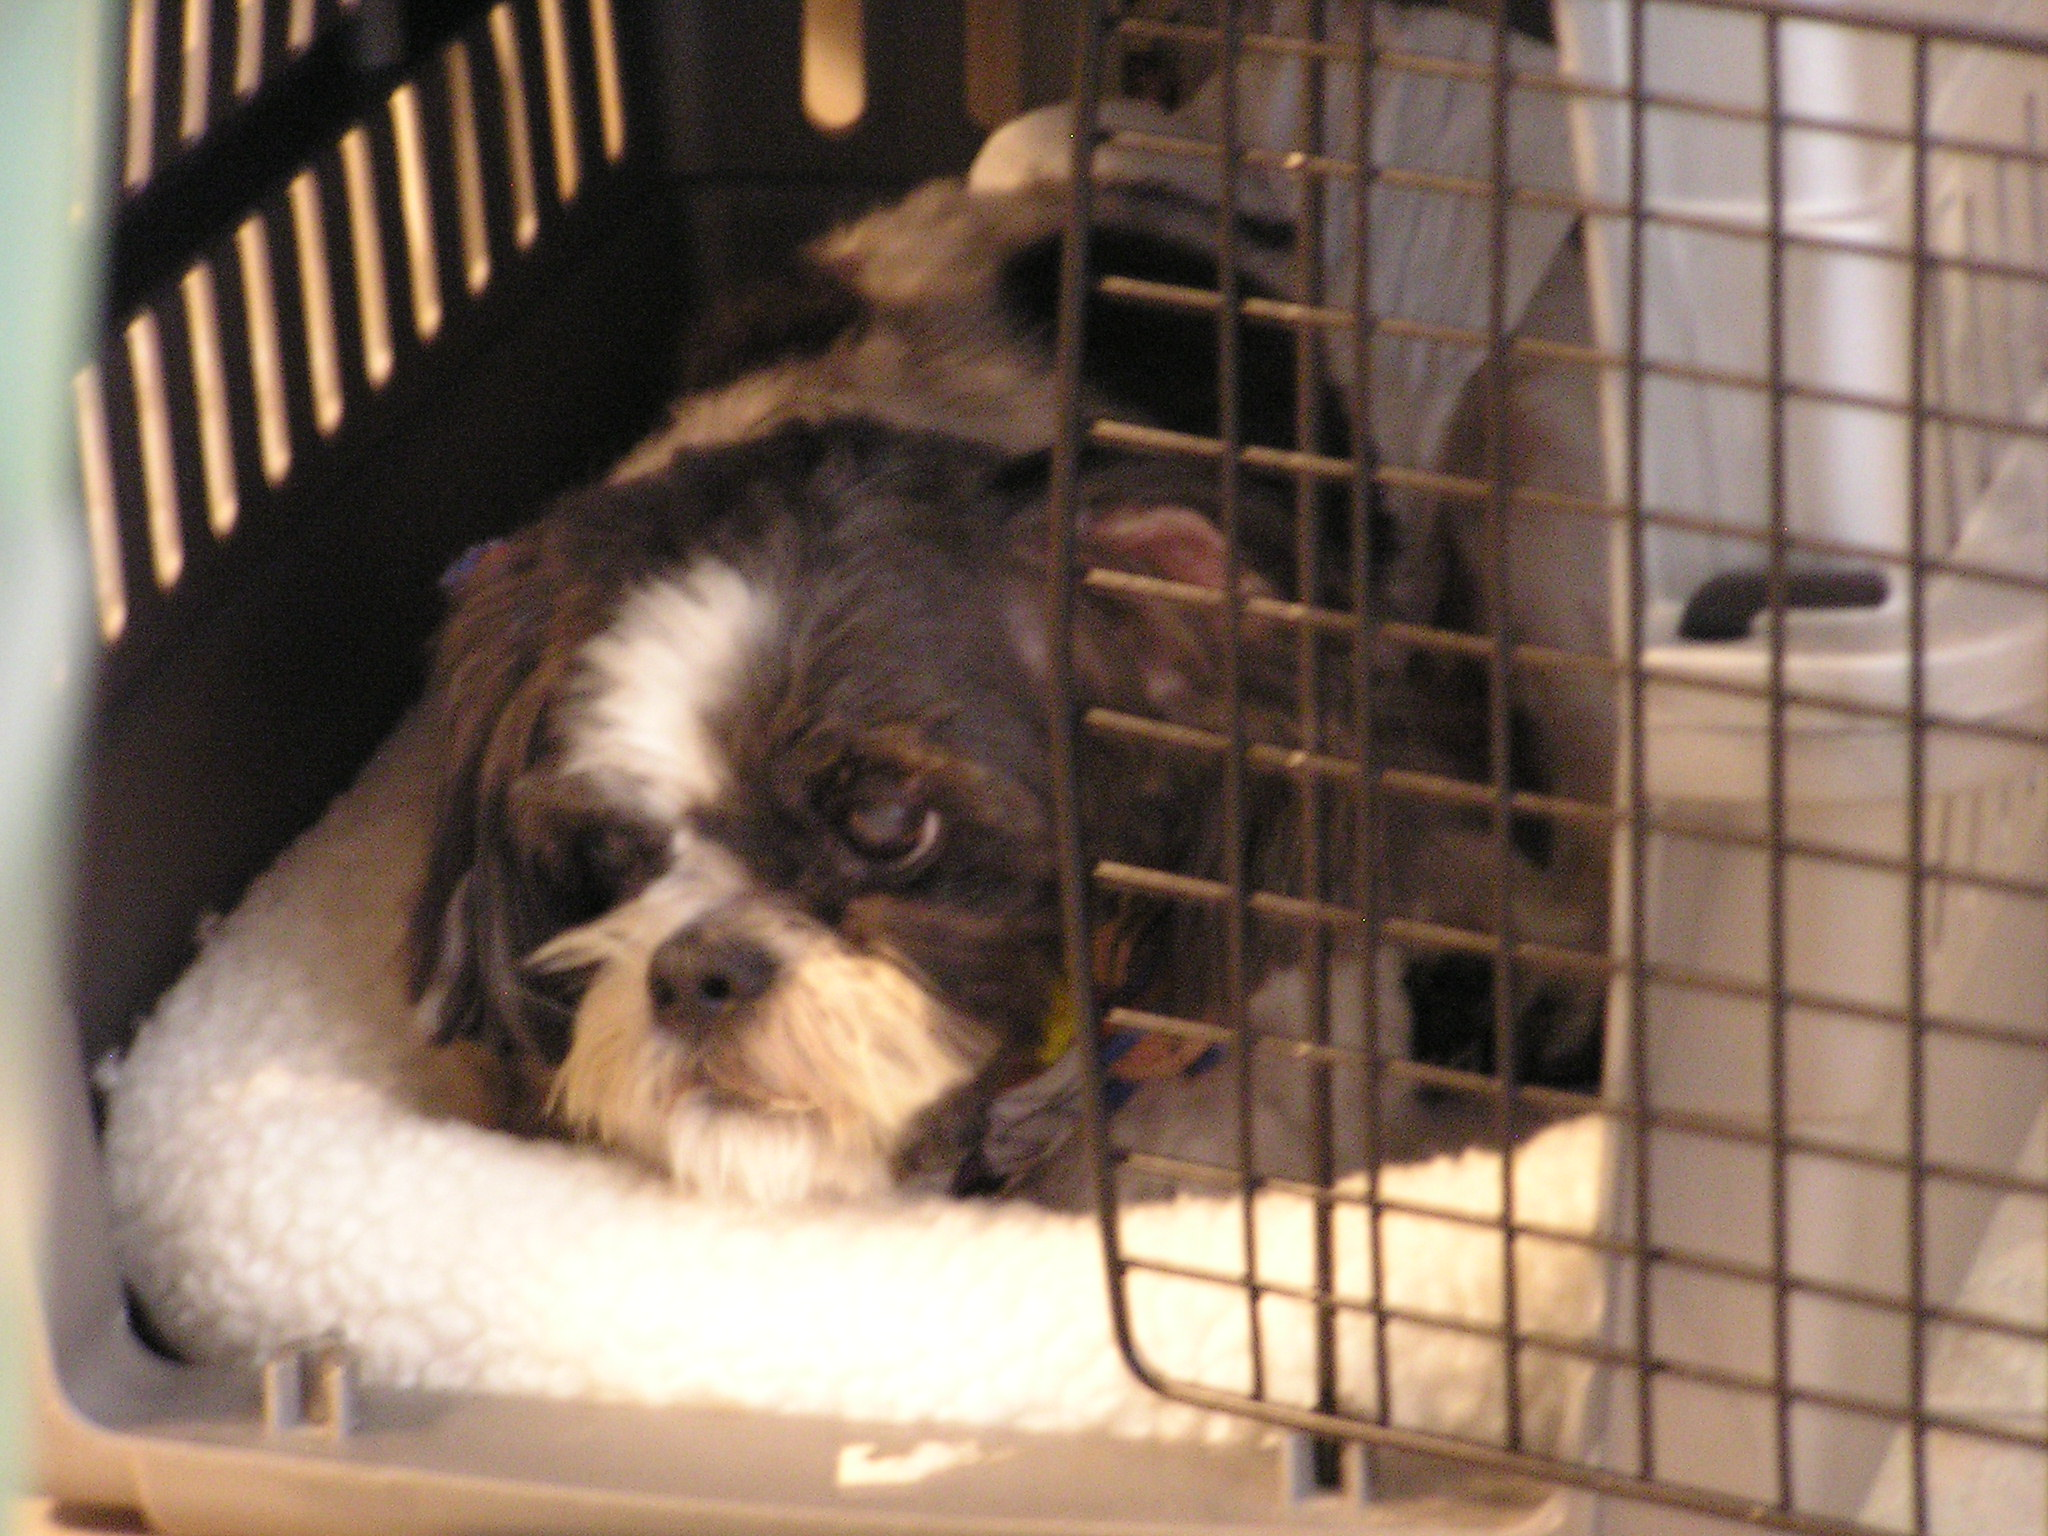 Alfie_in_crate_102006.jpg